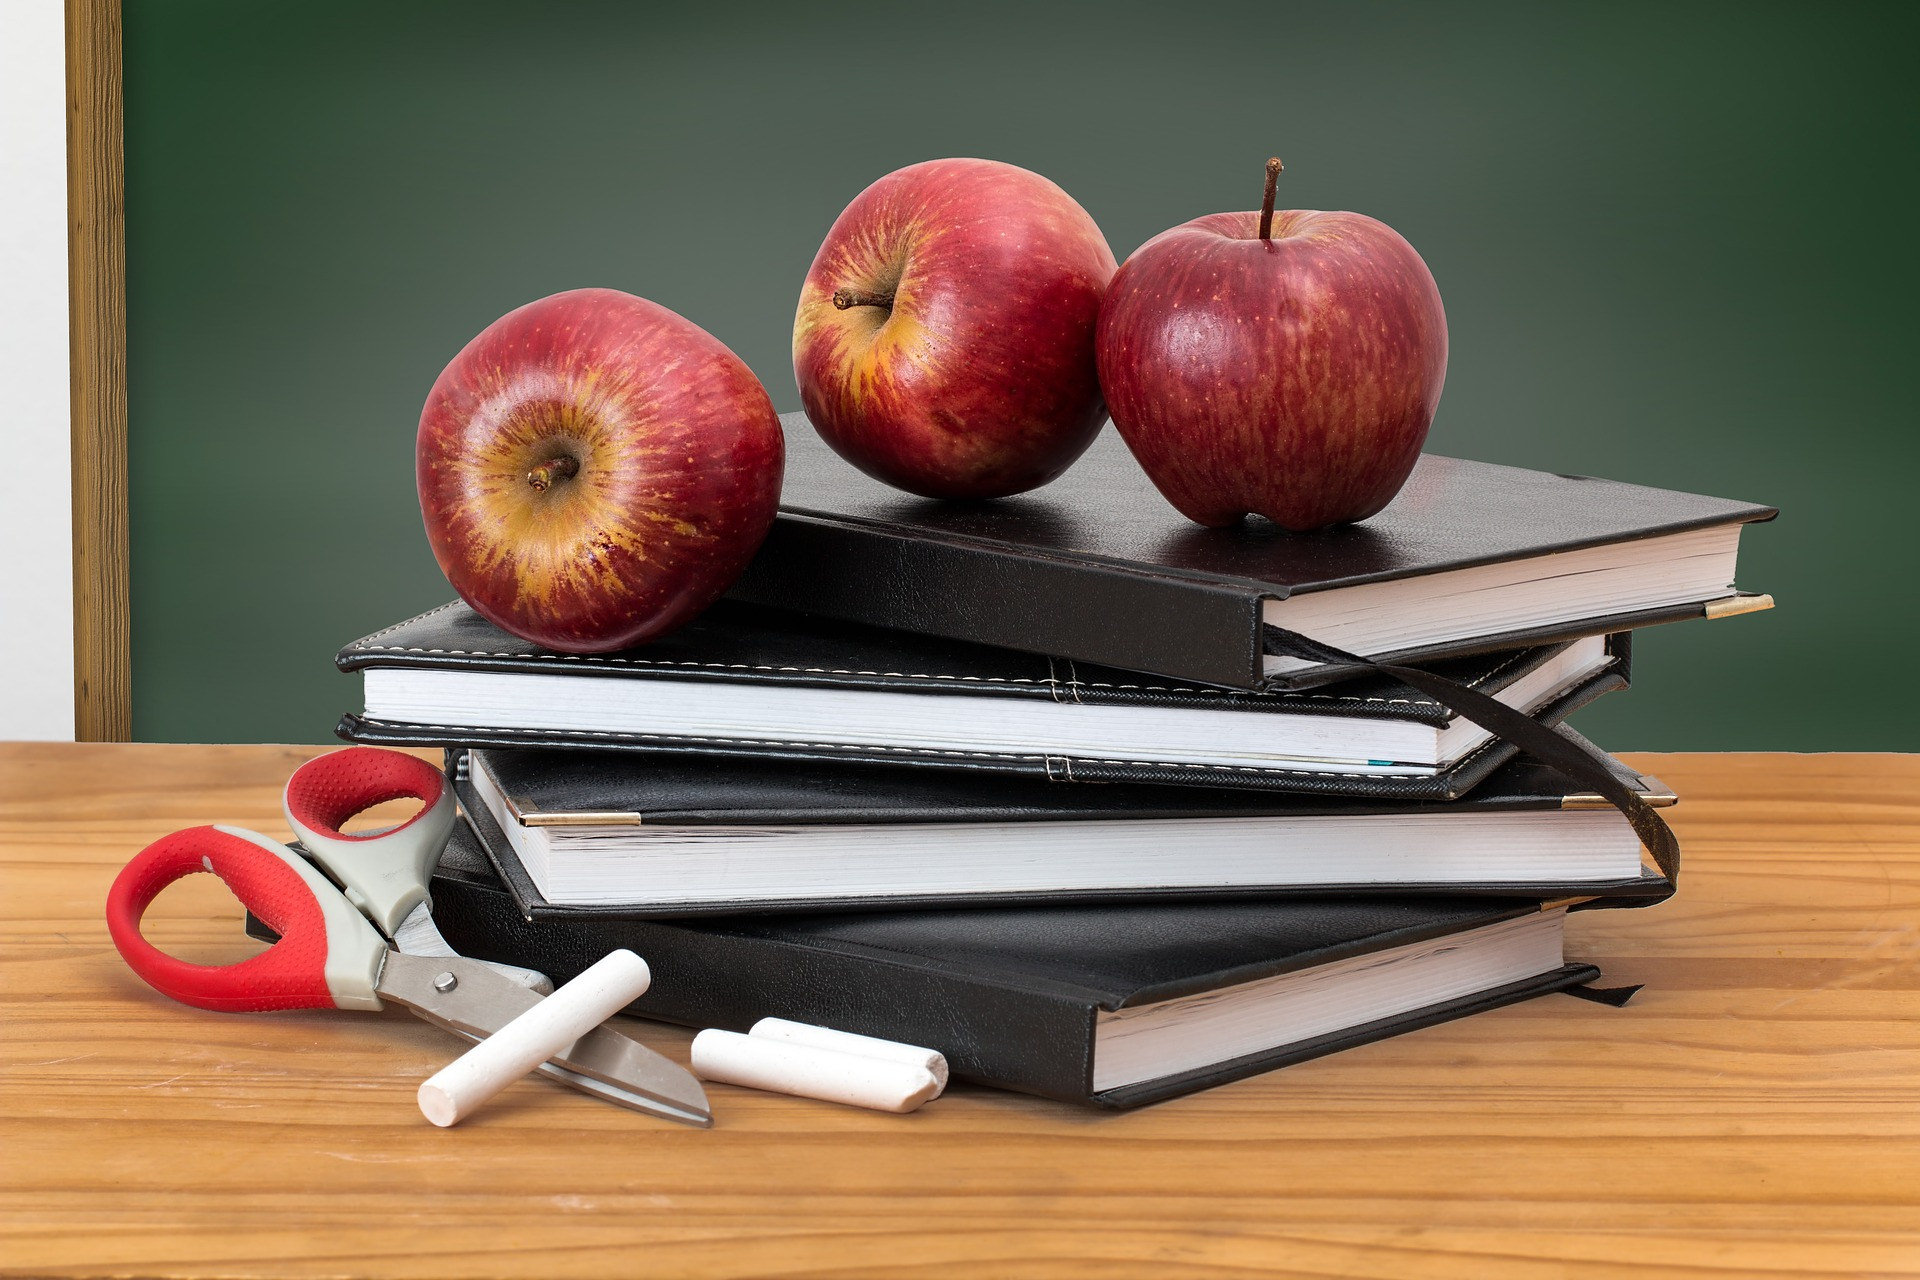 A stack of books lay on a desk in front of a blackboard. On top of the books are three apples. Next to the books are a pair of scissors and many pieces of chalk.